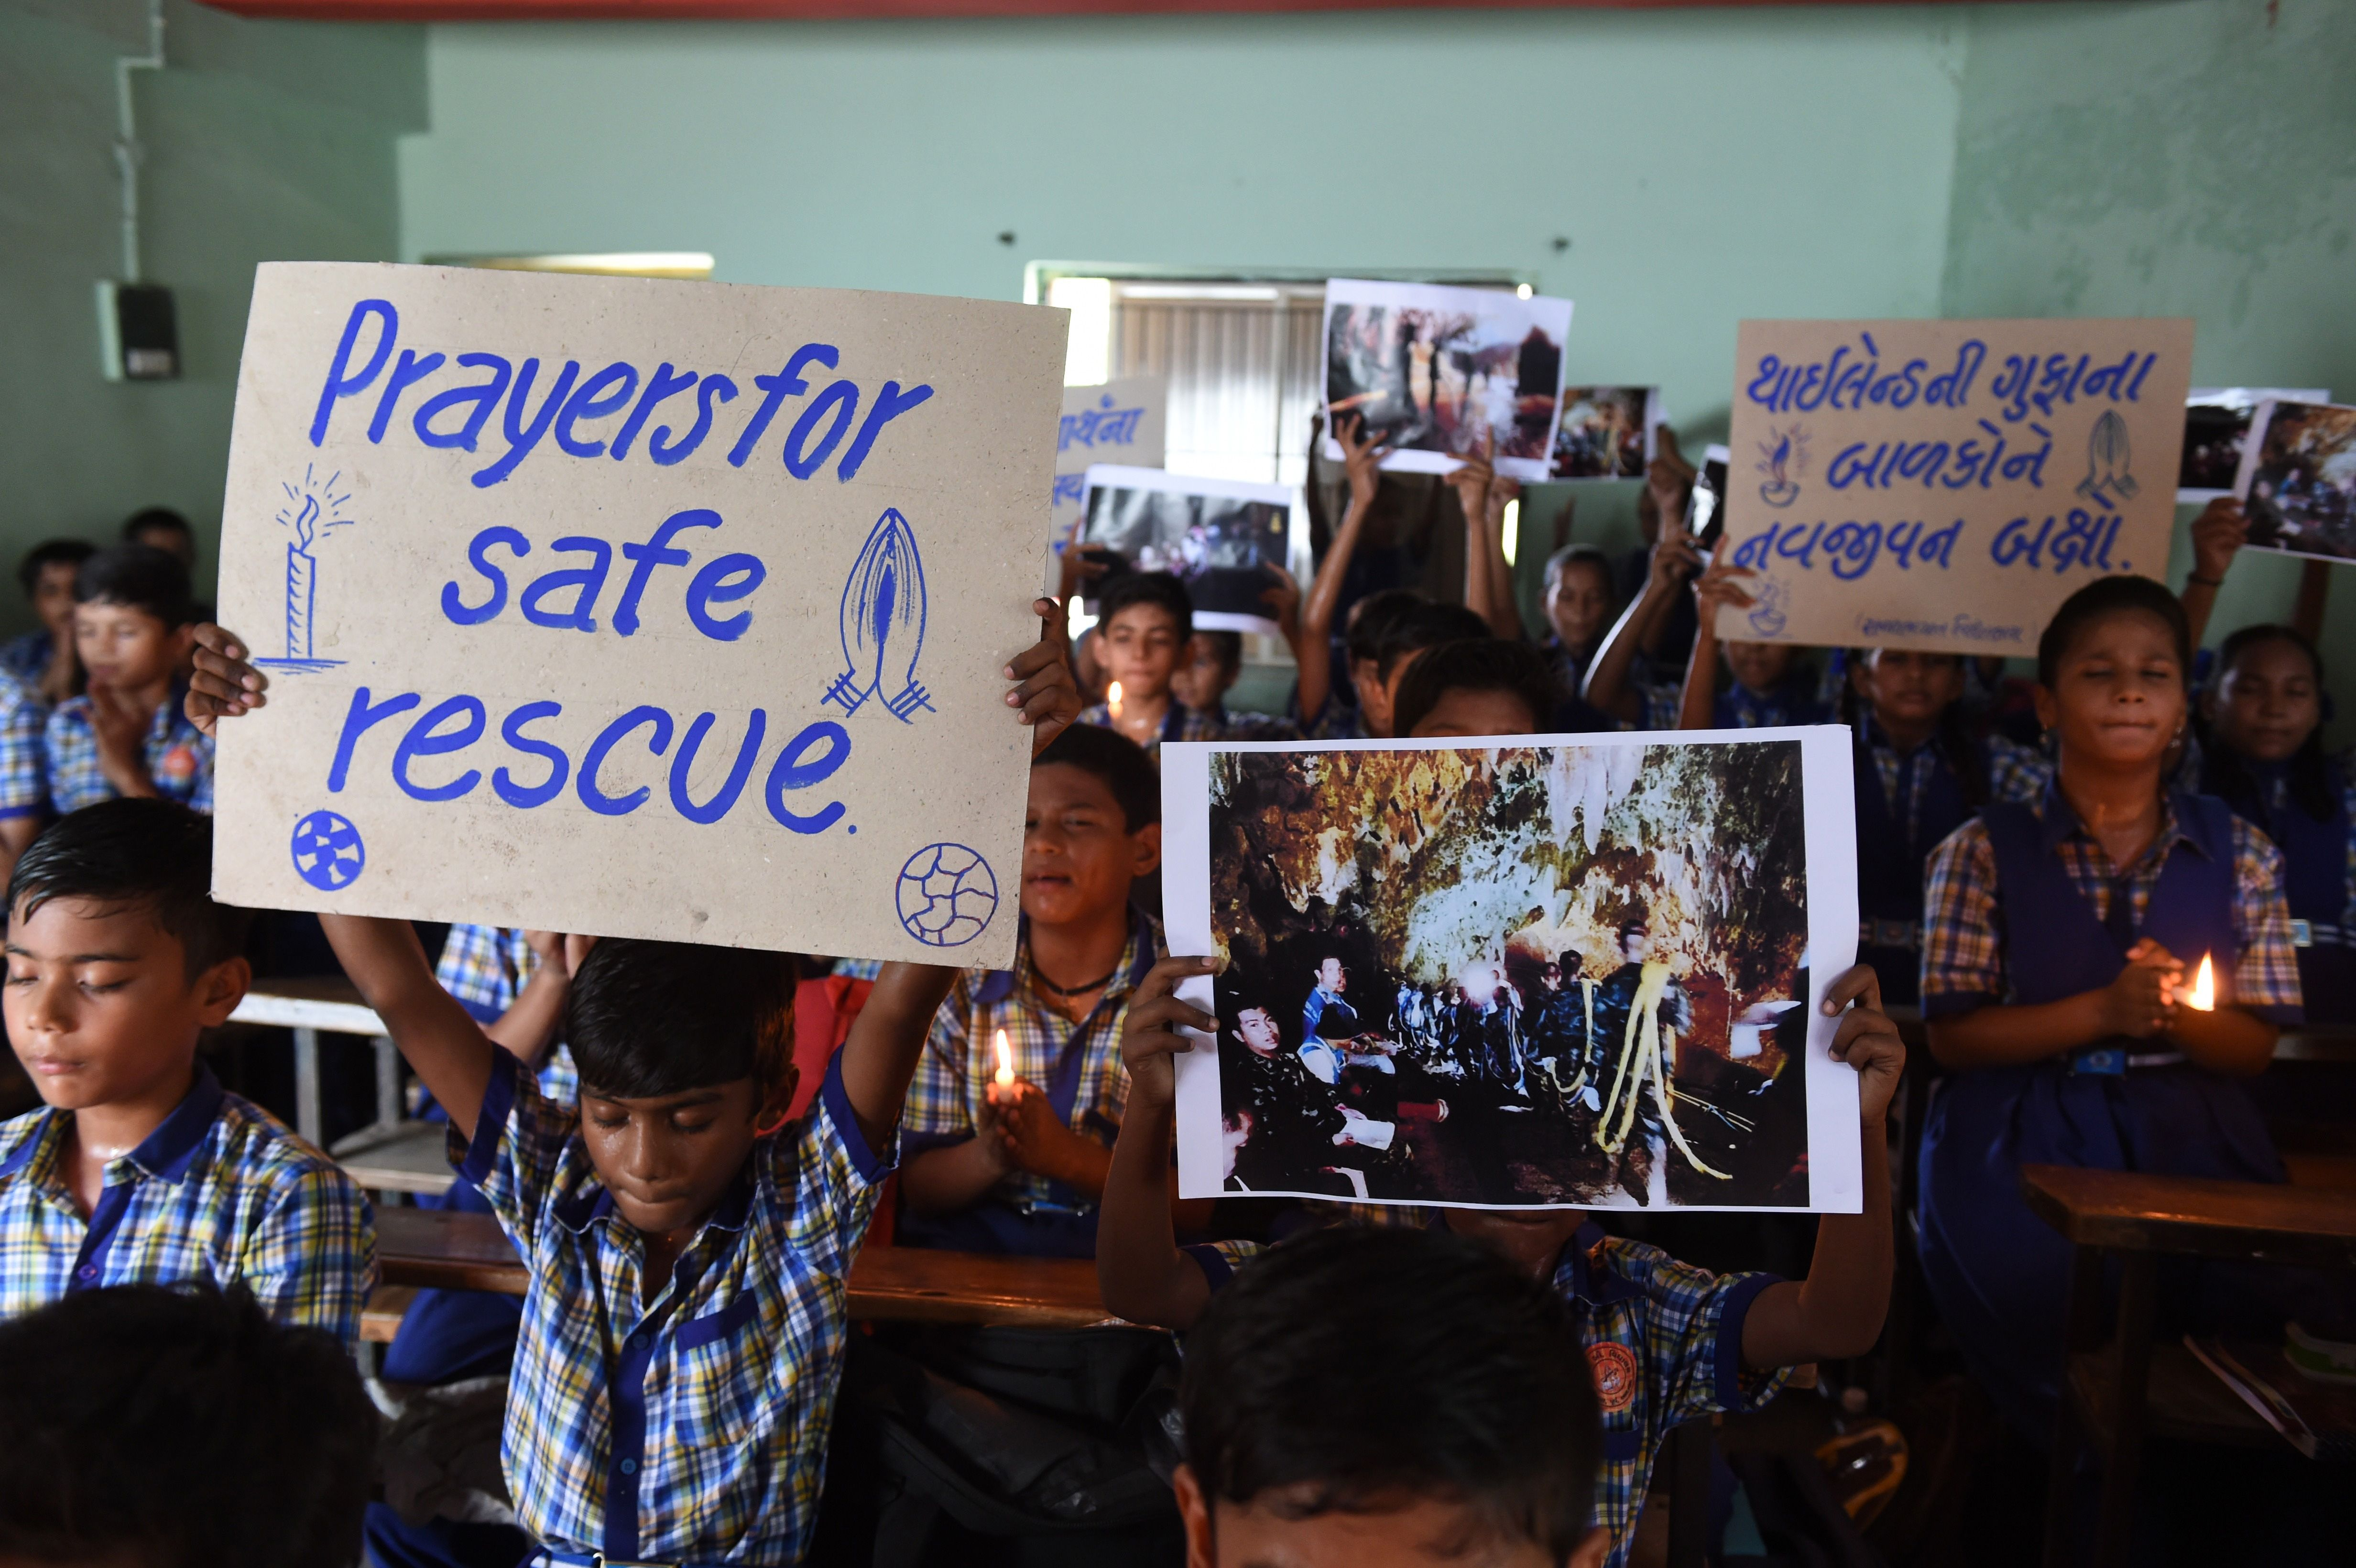 Indian schoolchildren hold placards and pictures during a prayer event for the safe rescue of young football players and their coach stuck in a cave in Thailand, in Ahmedabad on July 9, 2018.